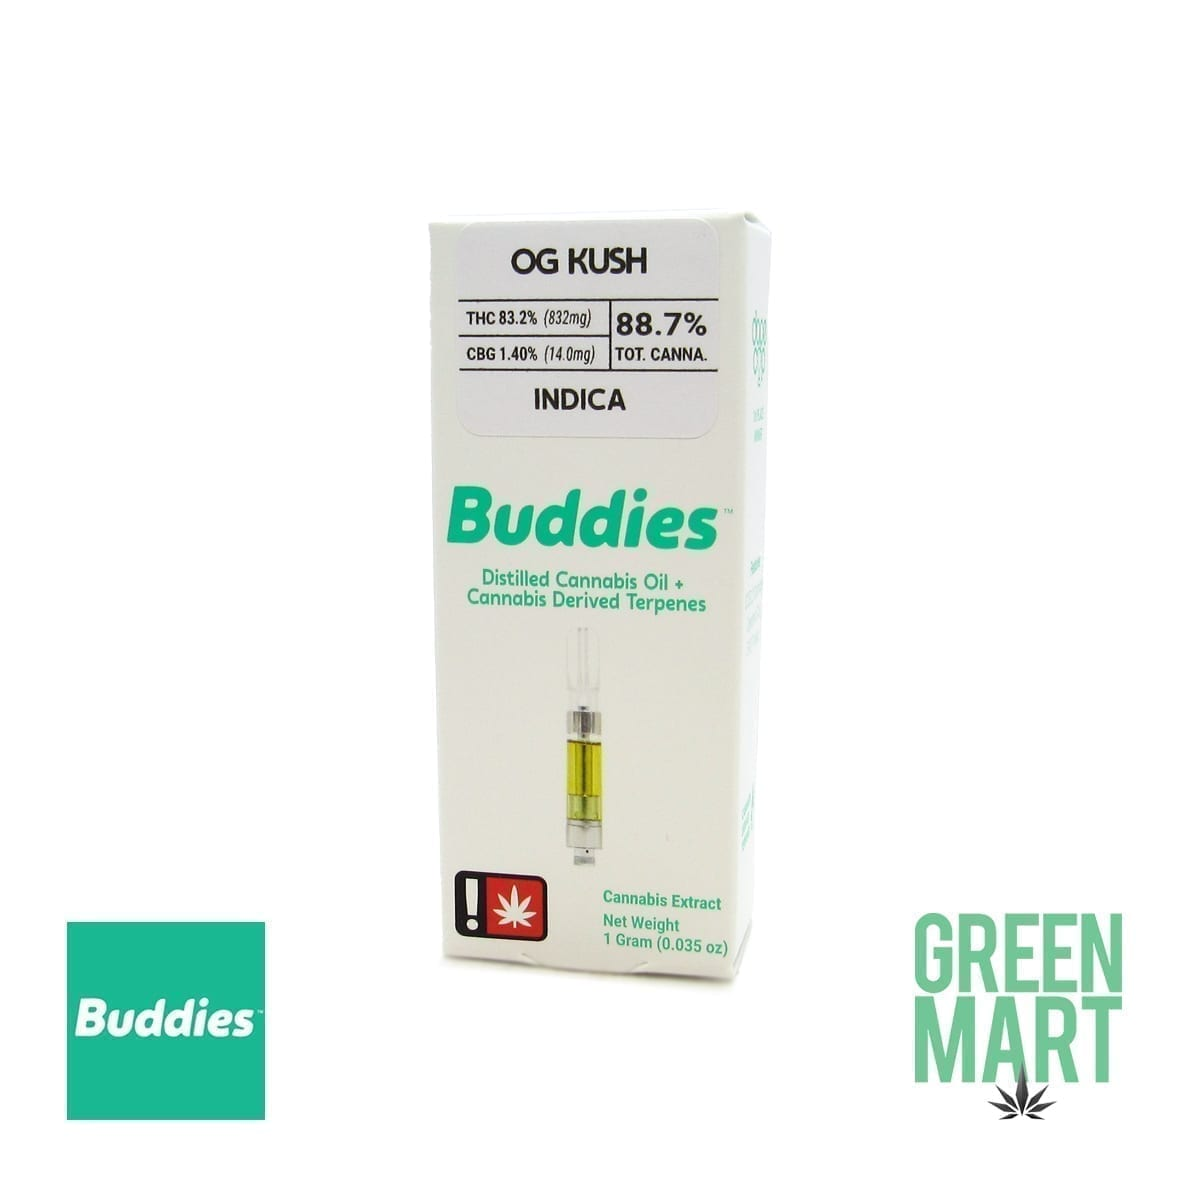 Buddies Brand Distillate Cartridge - OG Kush